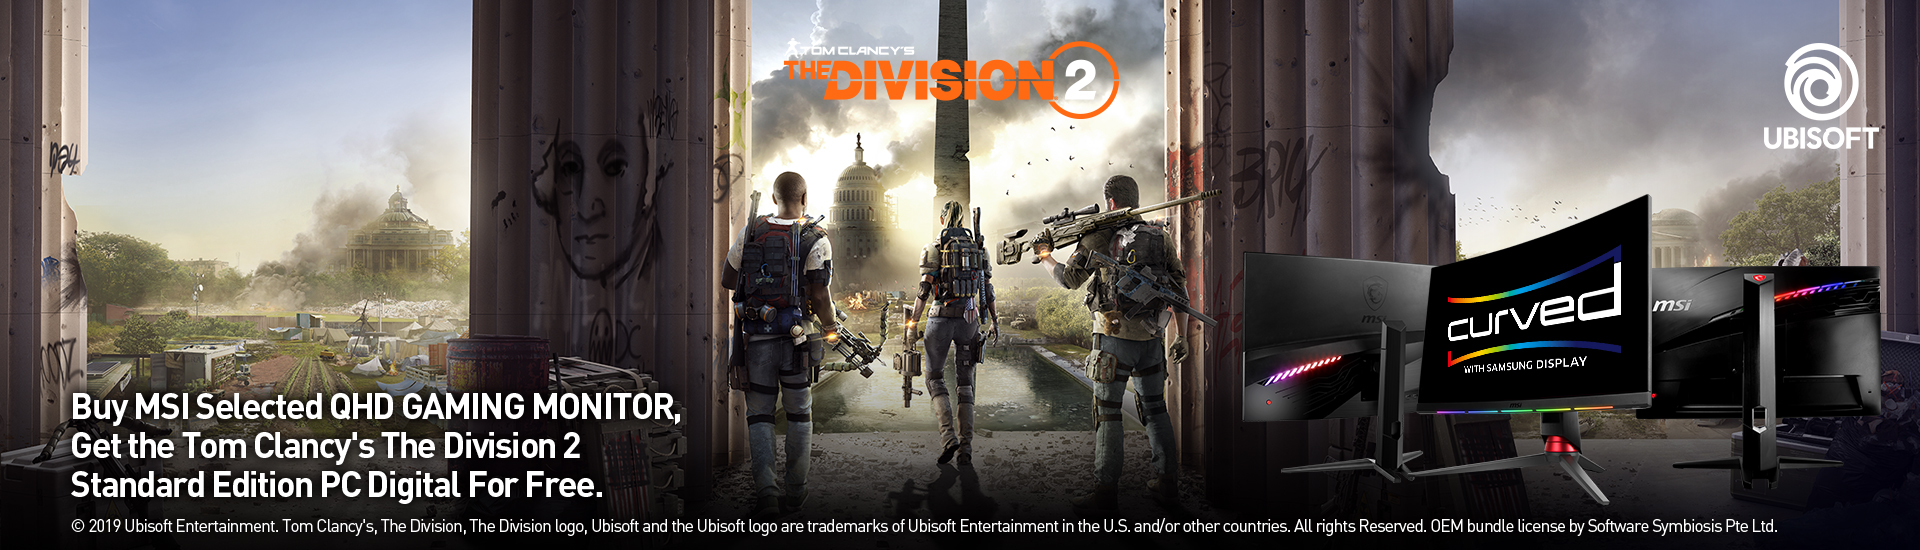 Tom Clancy's The Division 2 promotion